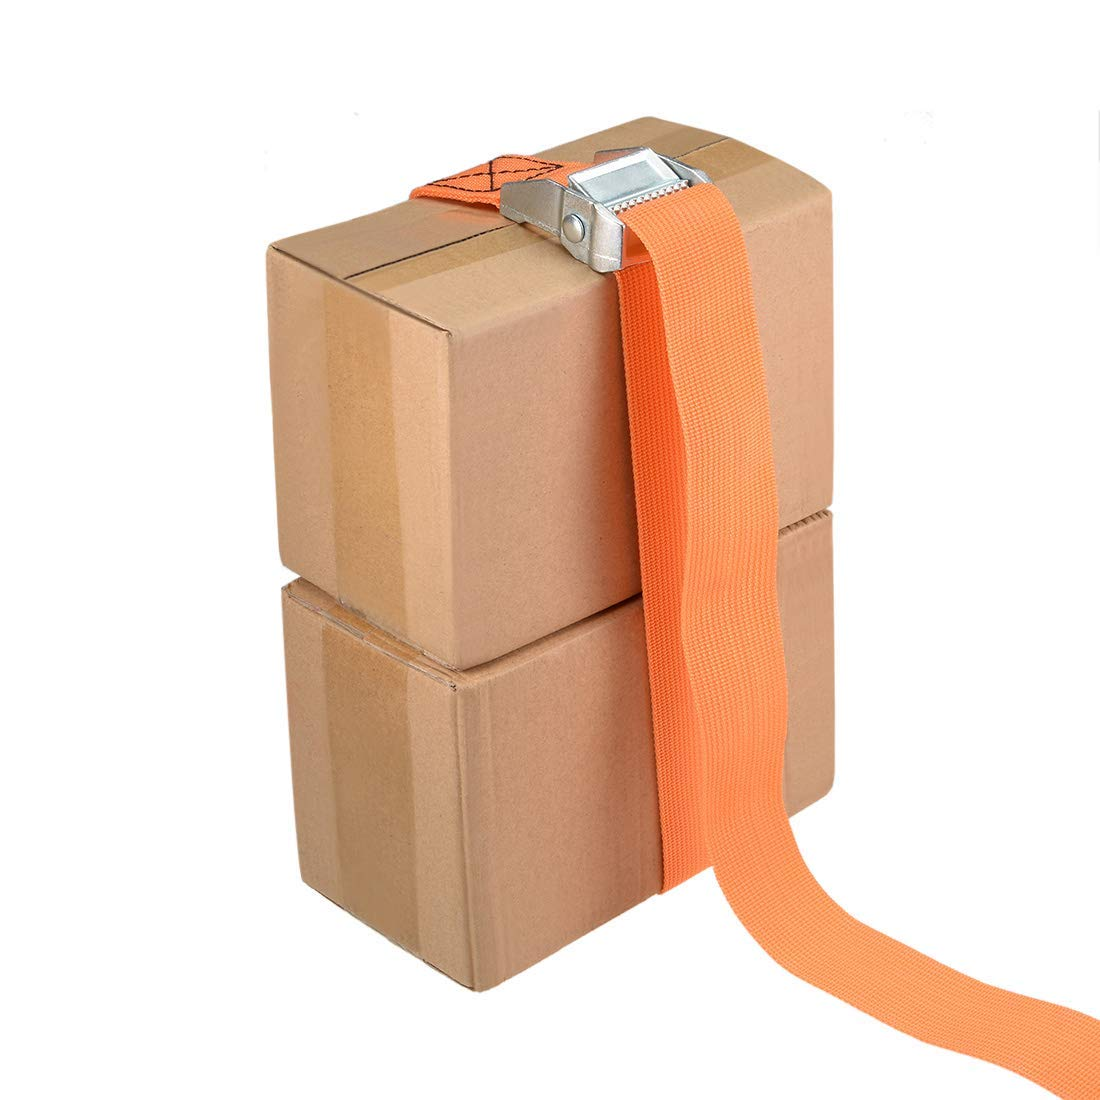 Mooring Strap 1.5-inch x 13-Foot Cargo Lashing Straps with cam Locking Buckle Up to 1100 lb Orange 4 Pieces